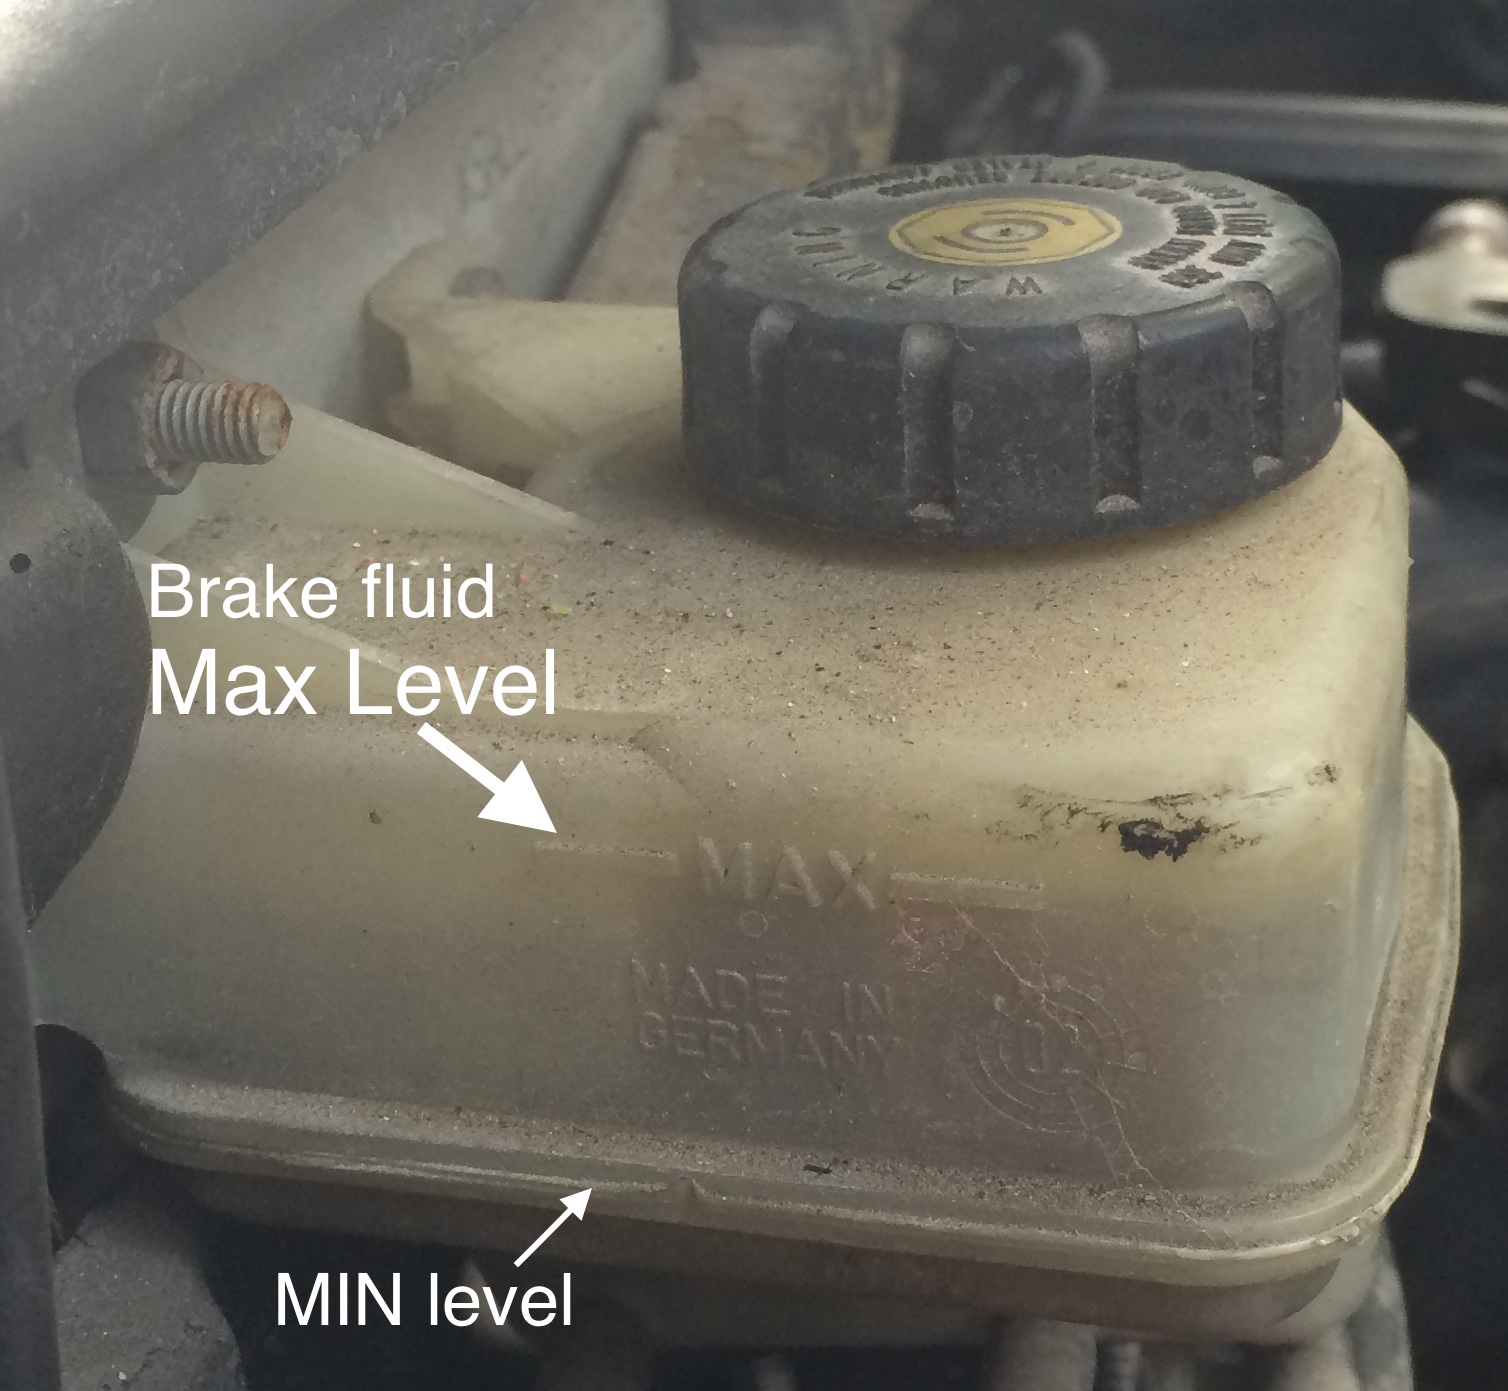 Brake fluid reservoir max level